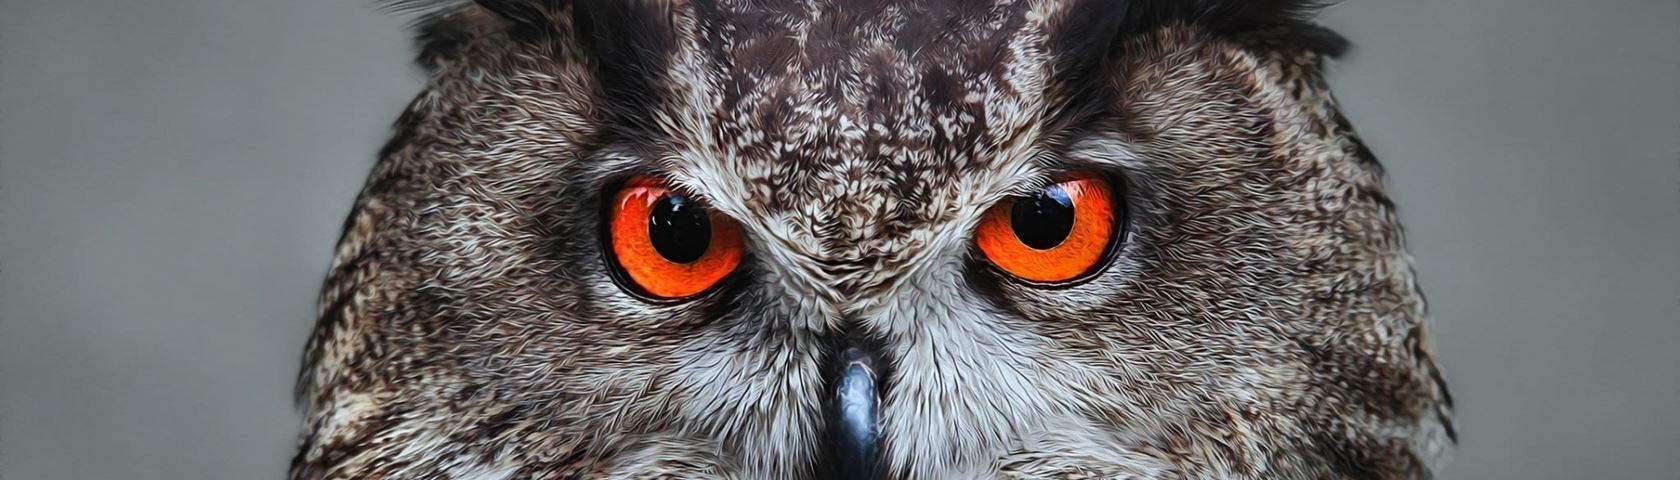 Orange Eyed Owl